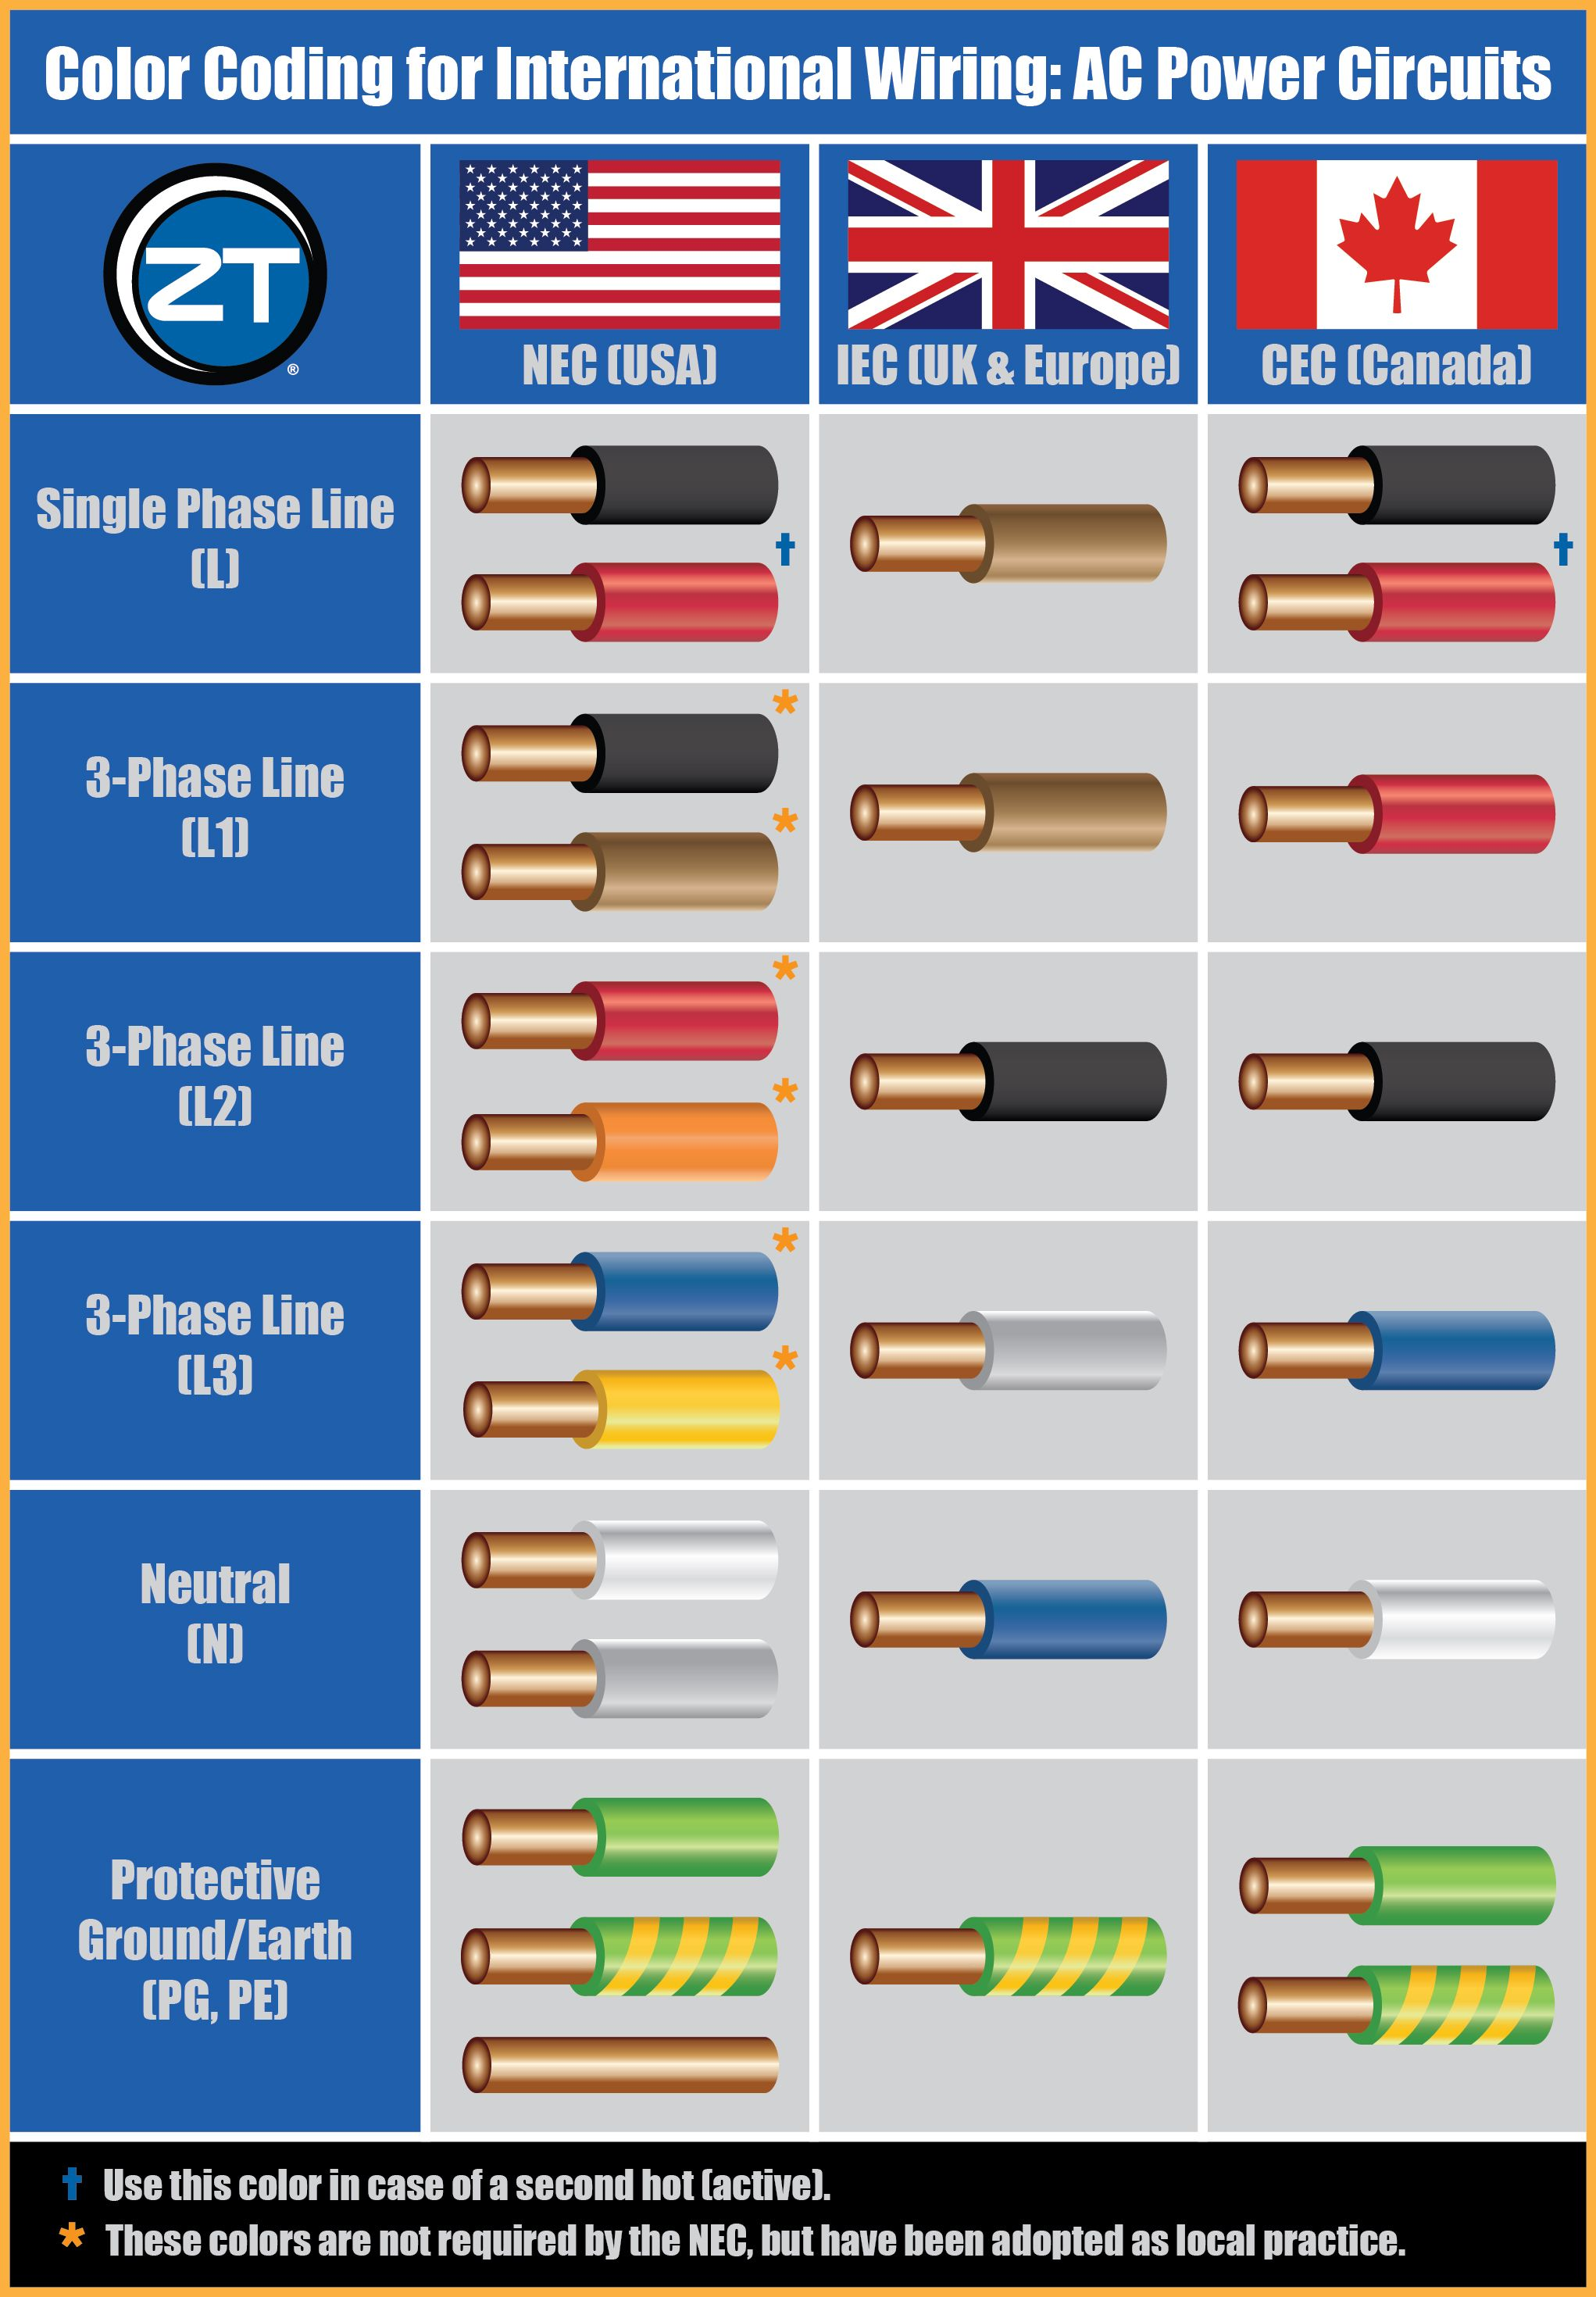 Guide to Color Coding for International Wiring #international #electrical # wiring #electrici… | Home electrical wiring, Electrical wiring colours, Electrical  wiringPinterest